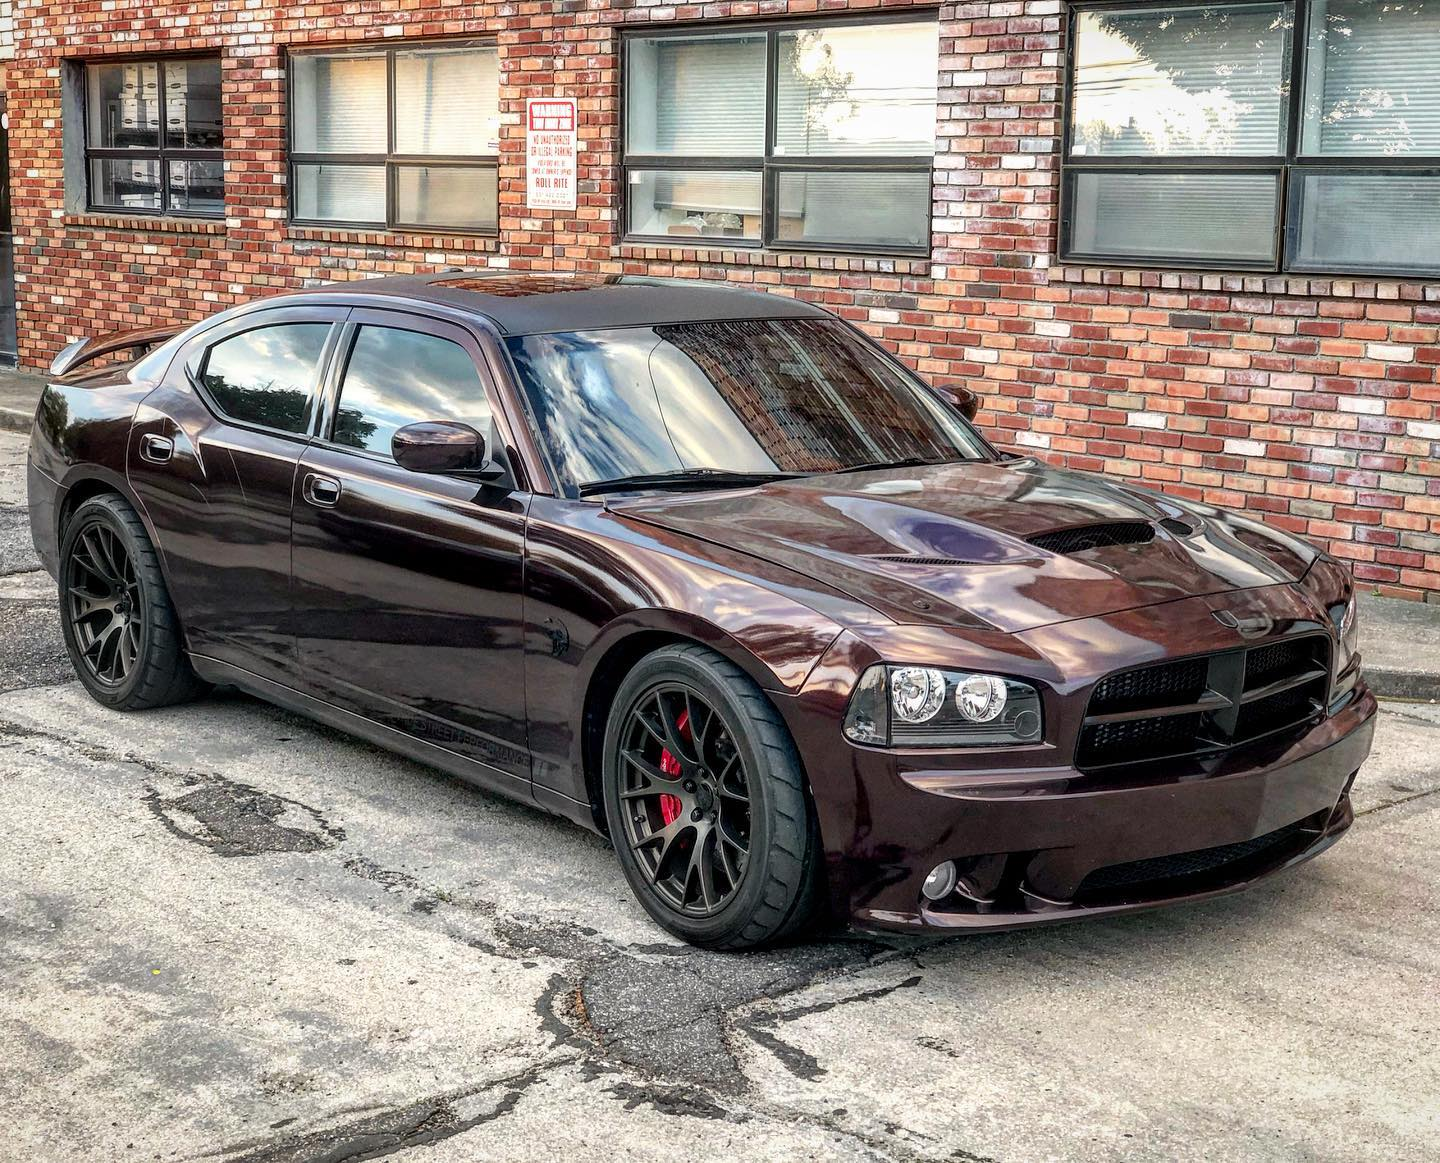 Hellcat Charger Price >> 2007 Charger with a Hellcat V8 – Engine Swap Depot